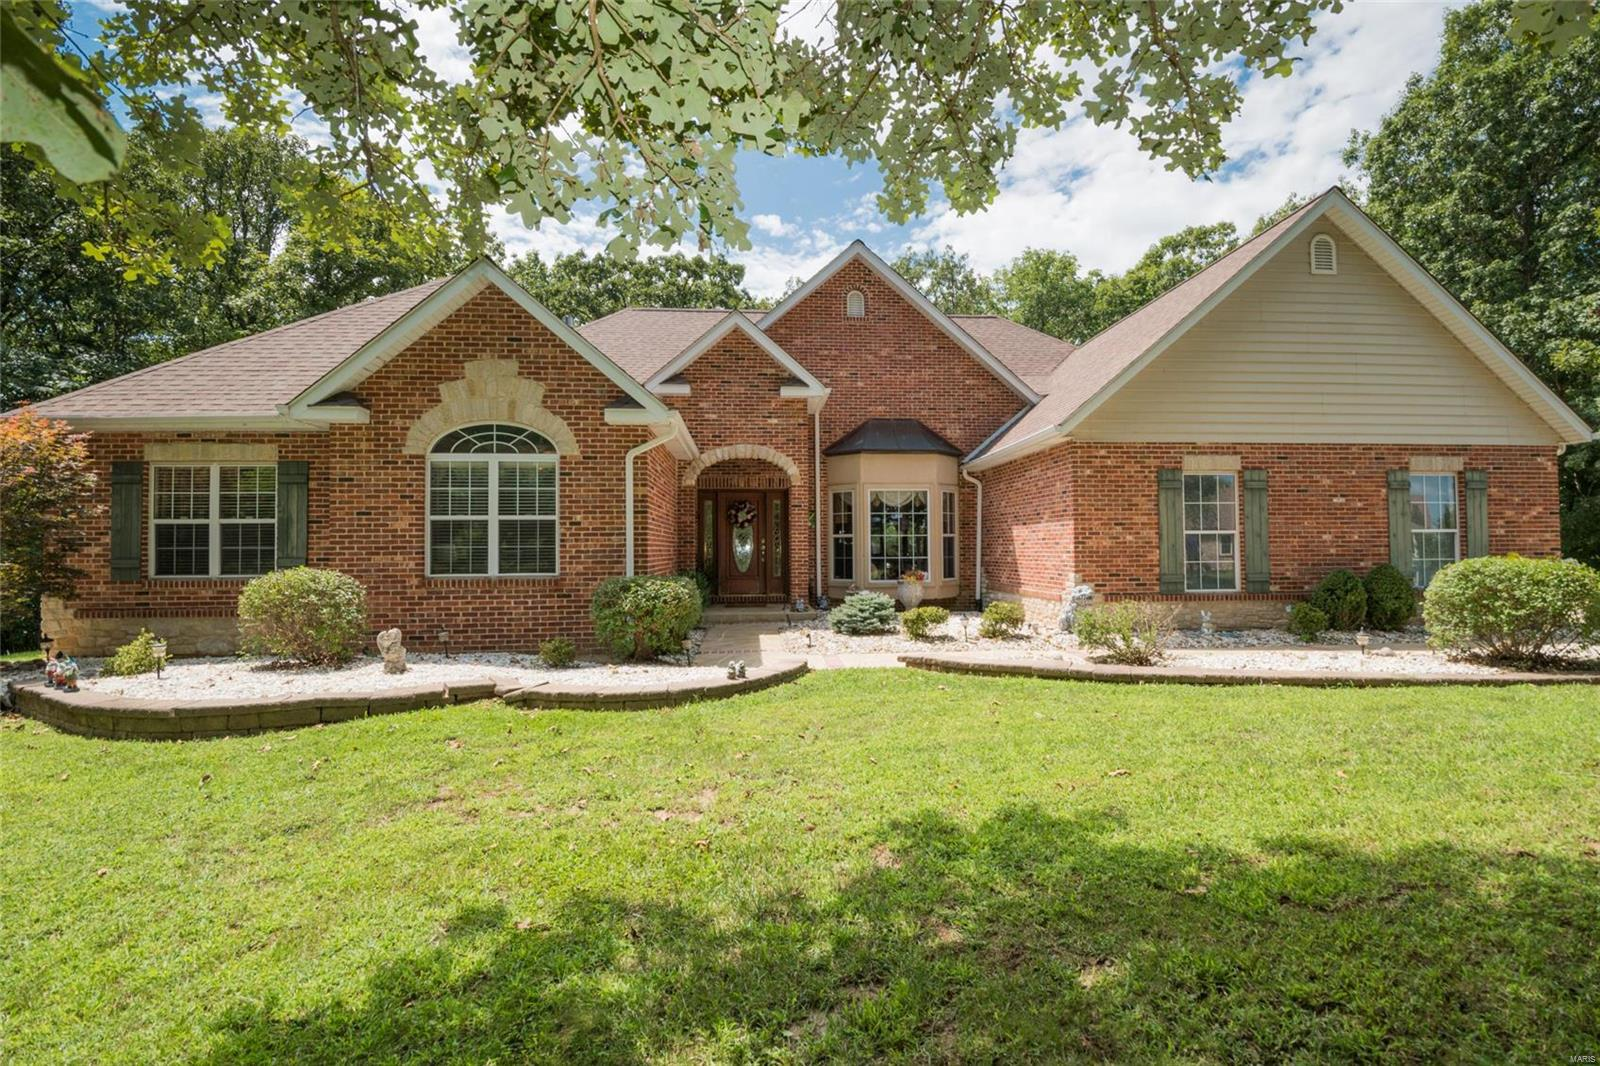 3706 Weeping Willow Court Property Photo - Waterloo, IL real estate listing